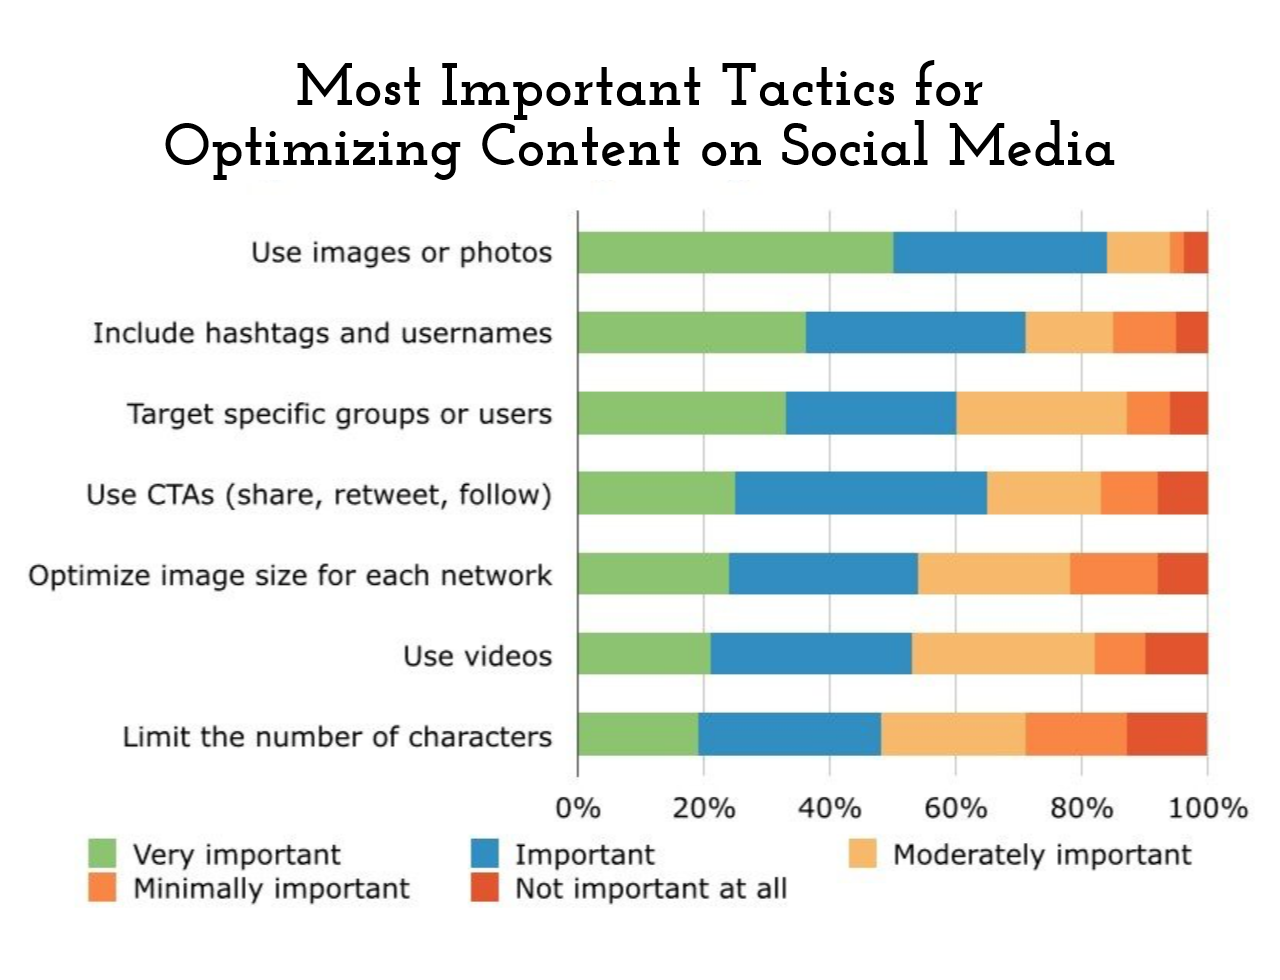 Most important tactics for optimizing content on social media